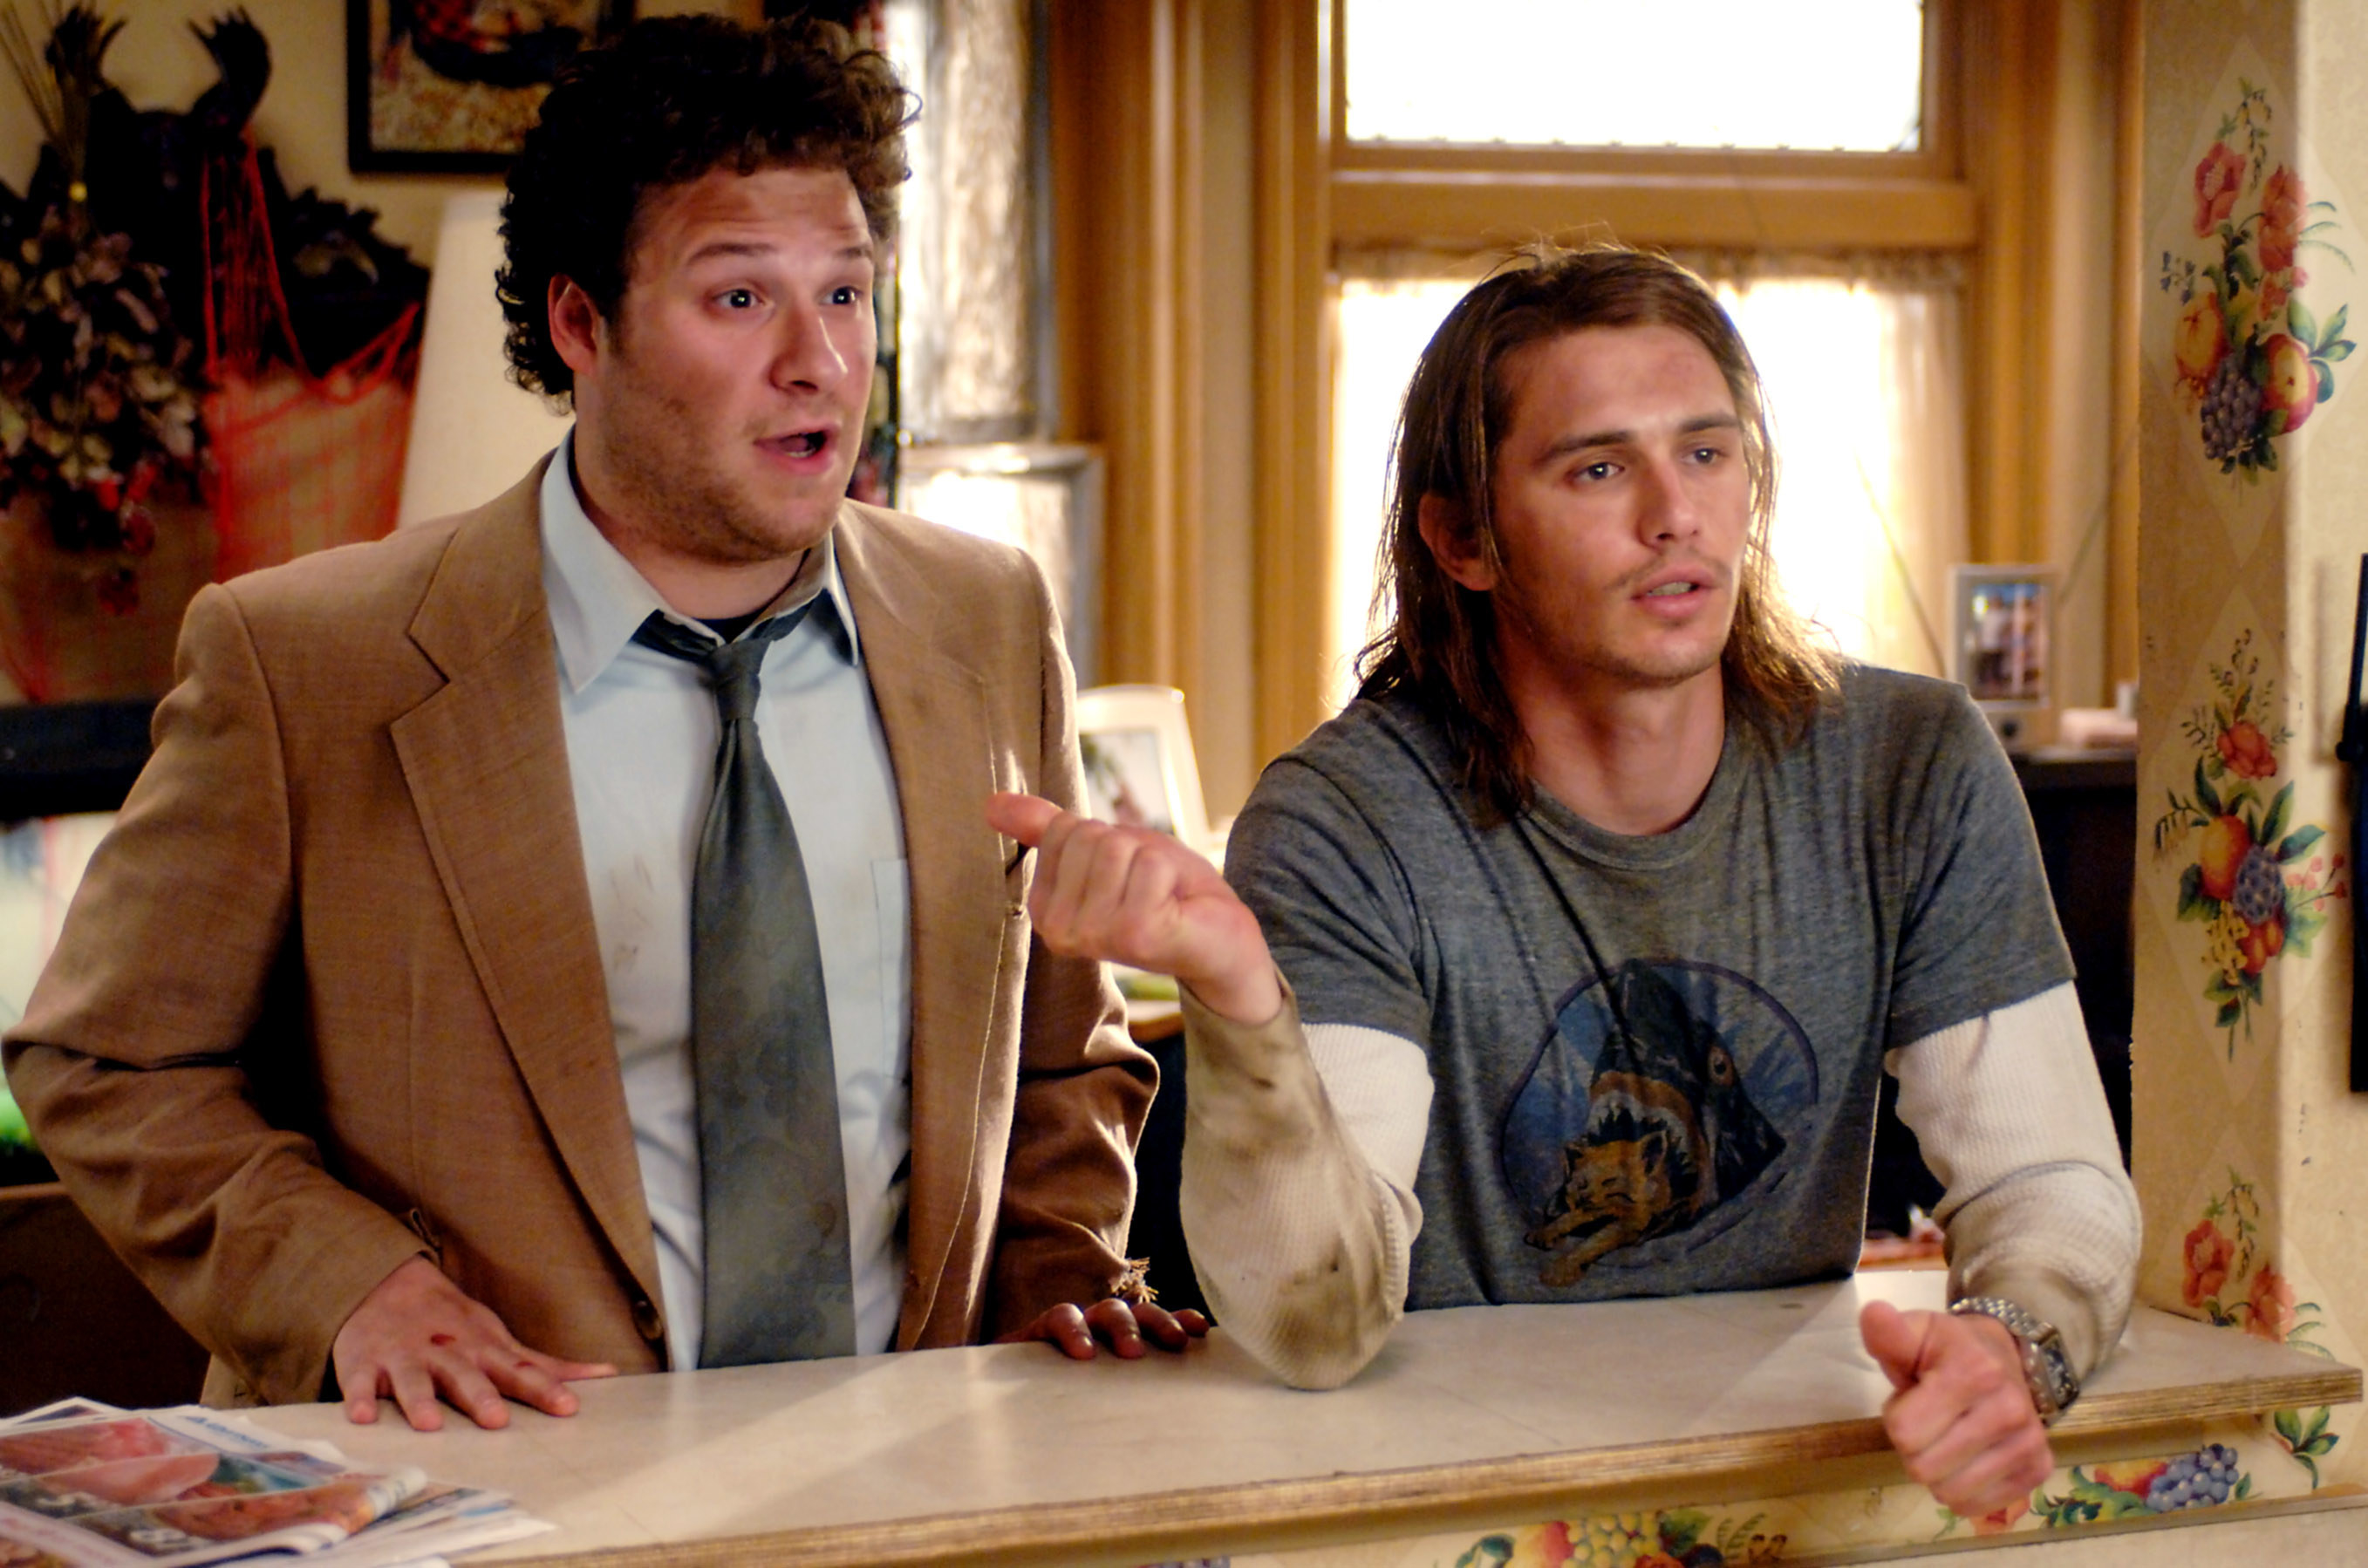 Seth Rogen and James Franco look disheveled as they lean on a counter